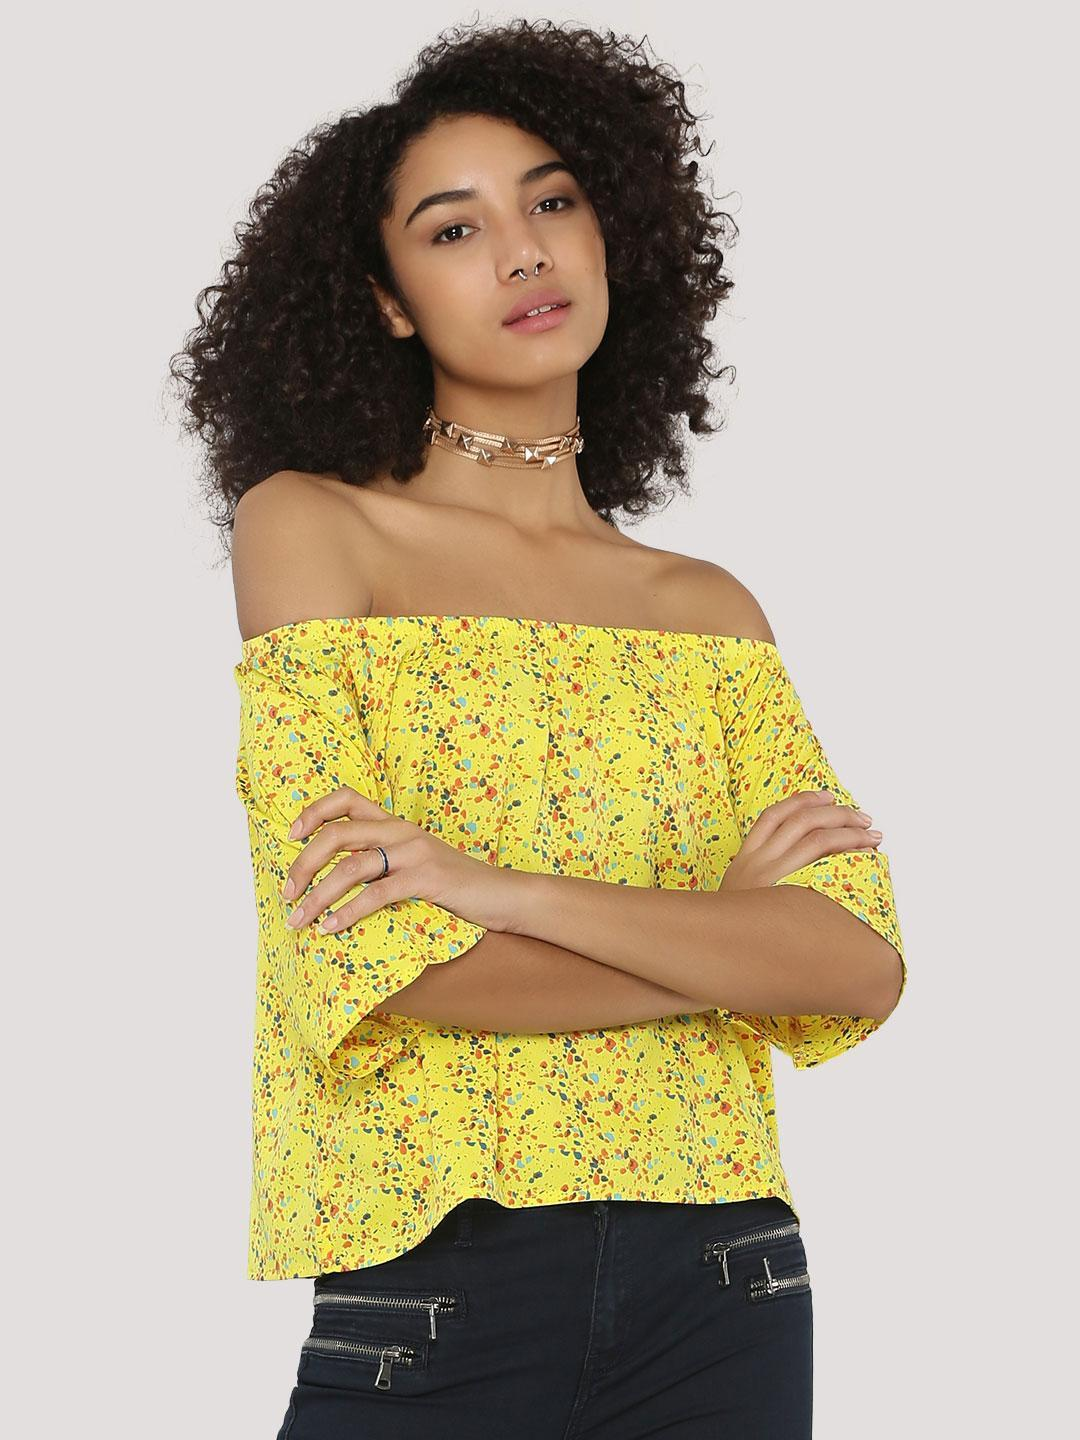 Blue Saint Yellow Off Shoulder Top With All Over Print 1